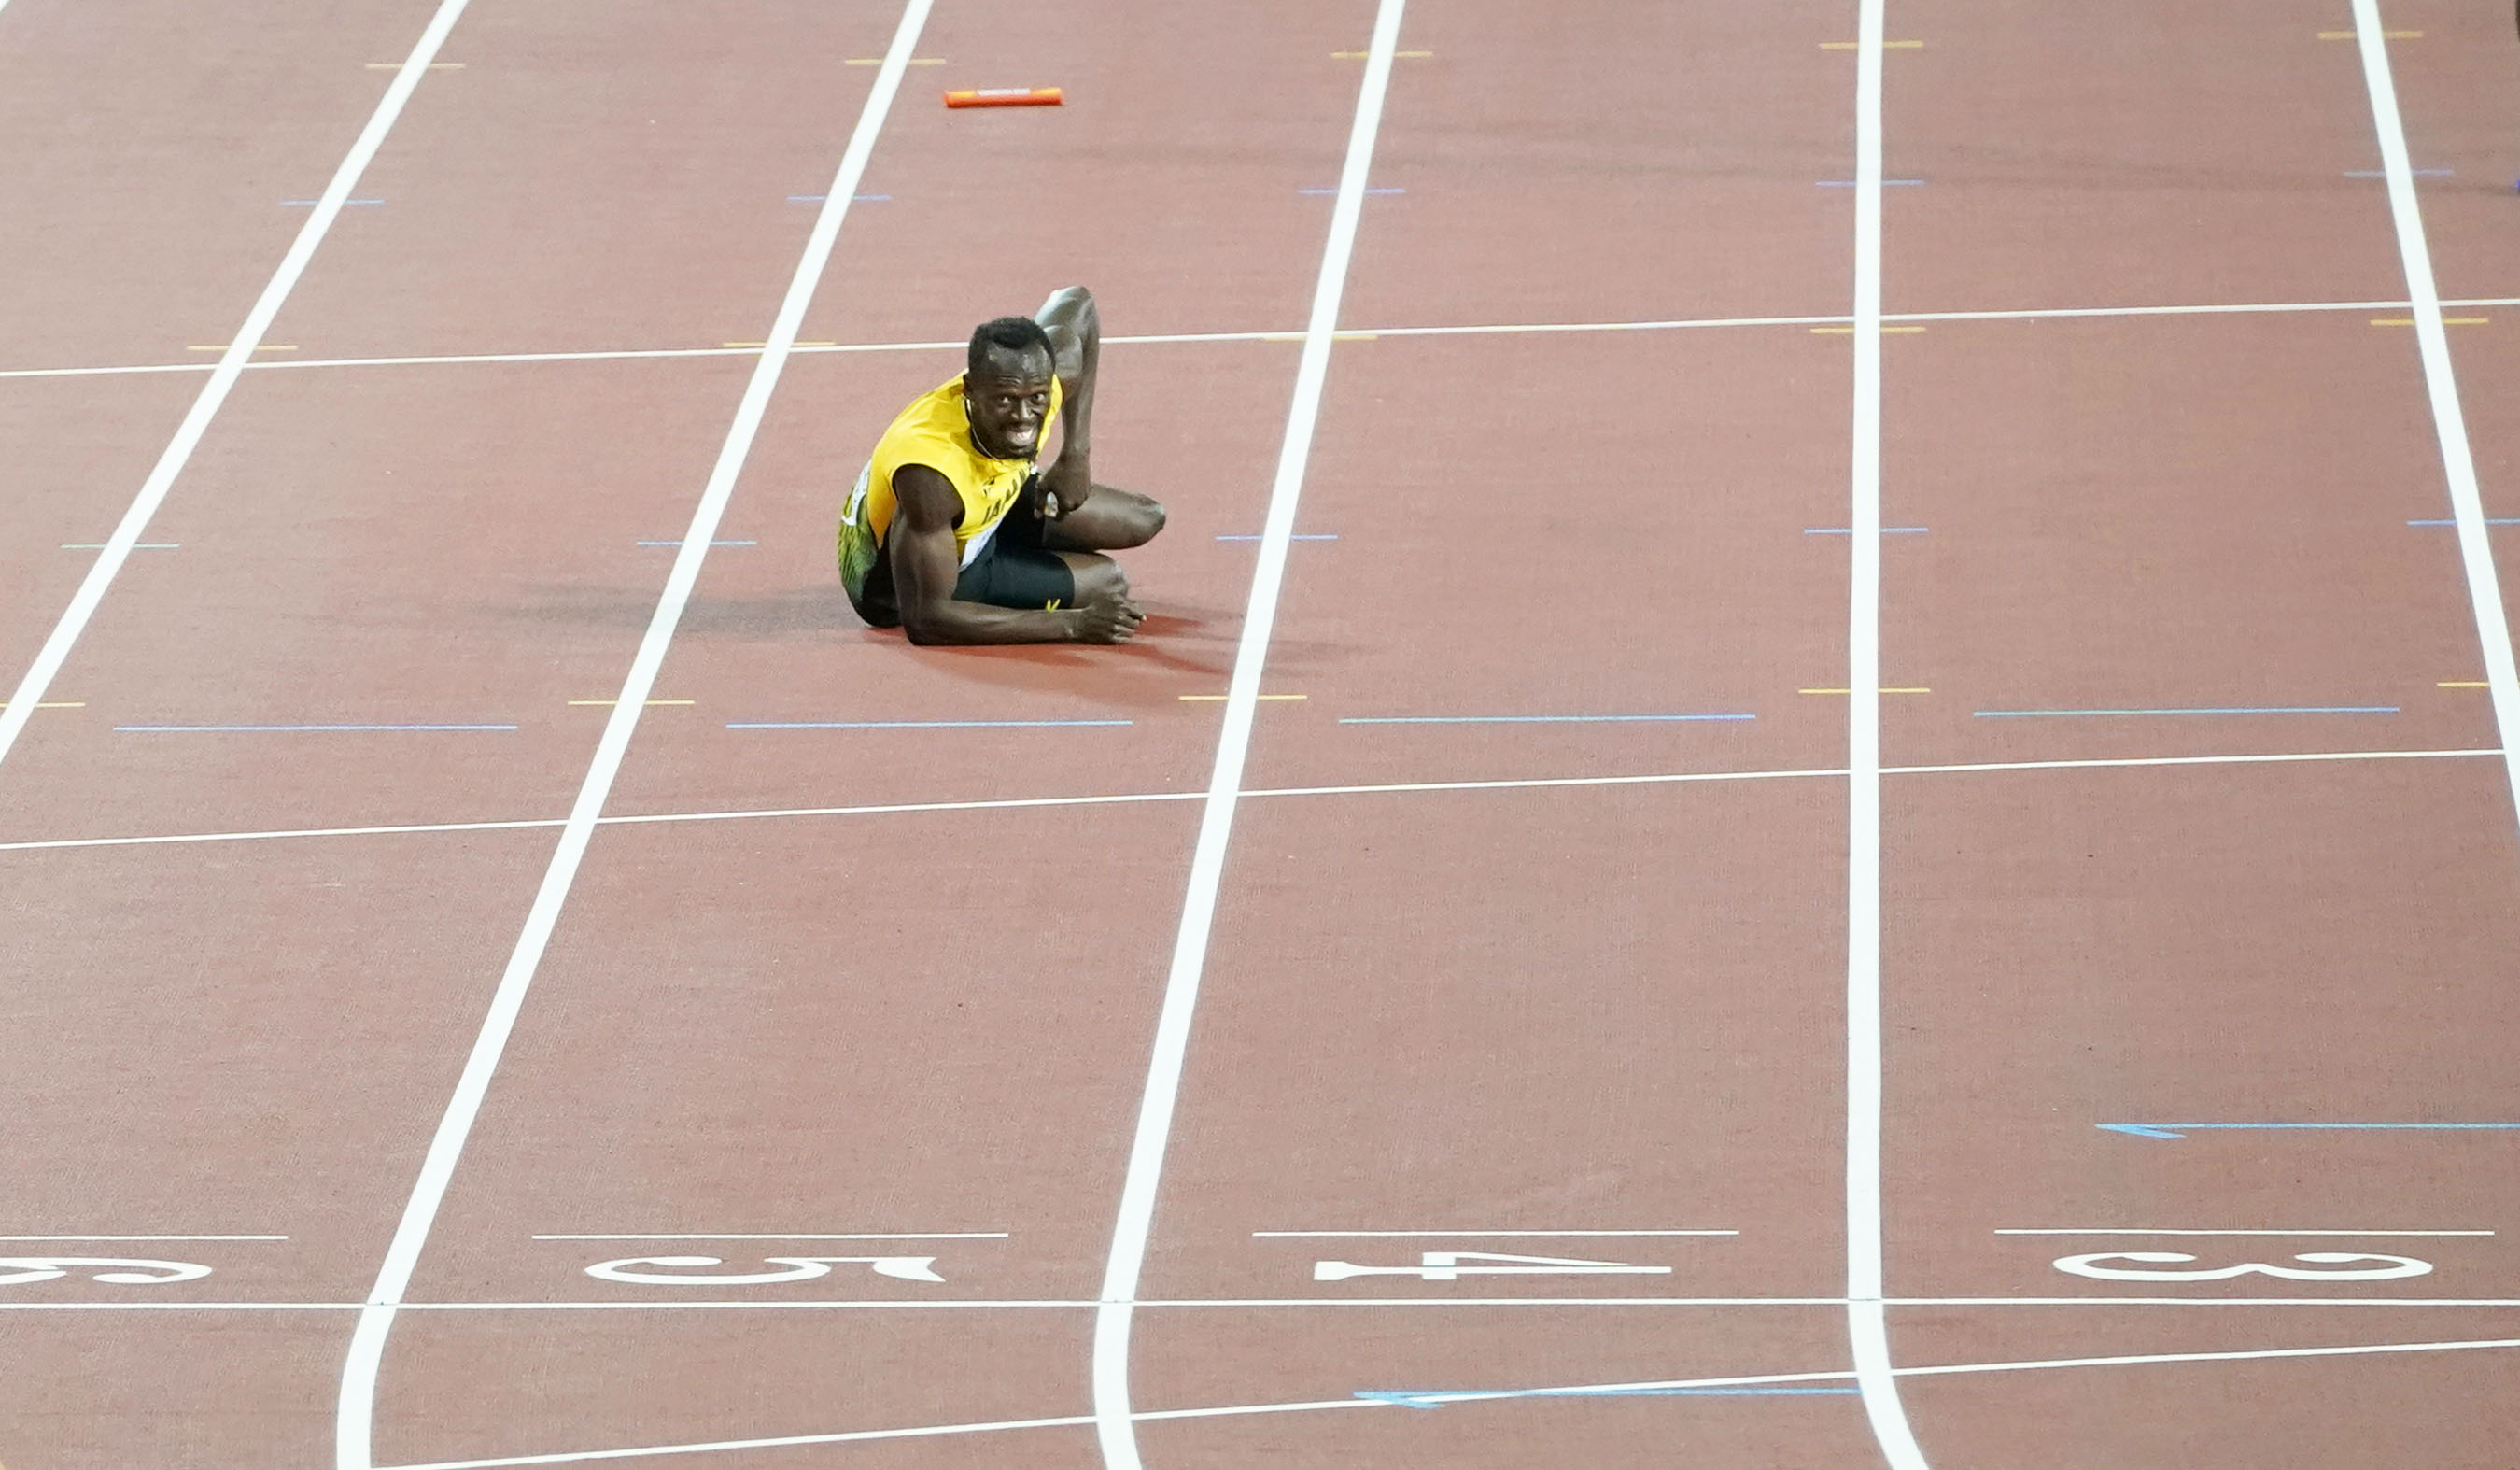 Athletics: Bolt ends storied career with injury